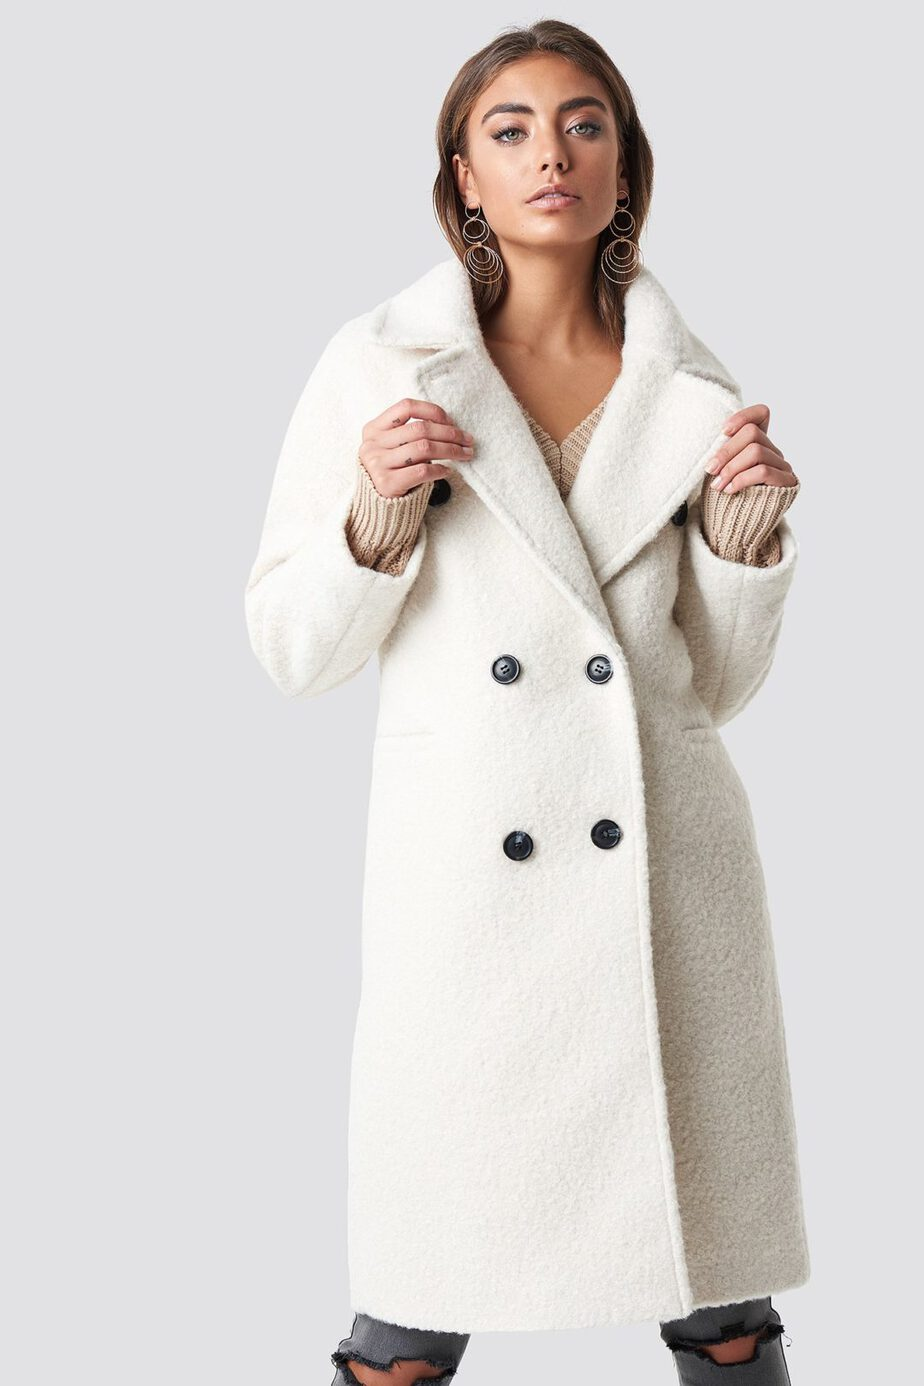 Autumn Trendy Pieces Under $100 Right Now | Fall Essentials | Autumn Essentials | Travel Beauty Blog | Sweaters | Trench Coat | Fall Guide | Boots